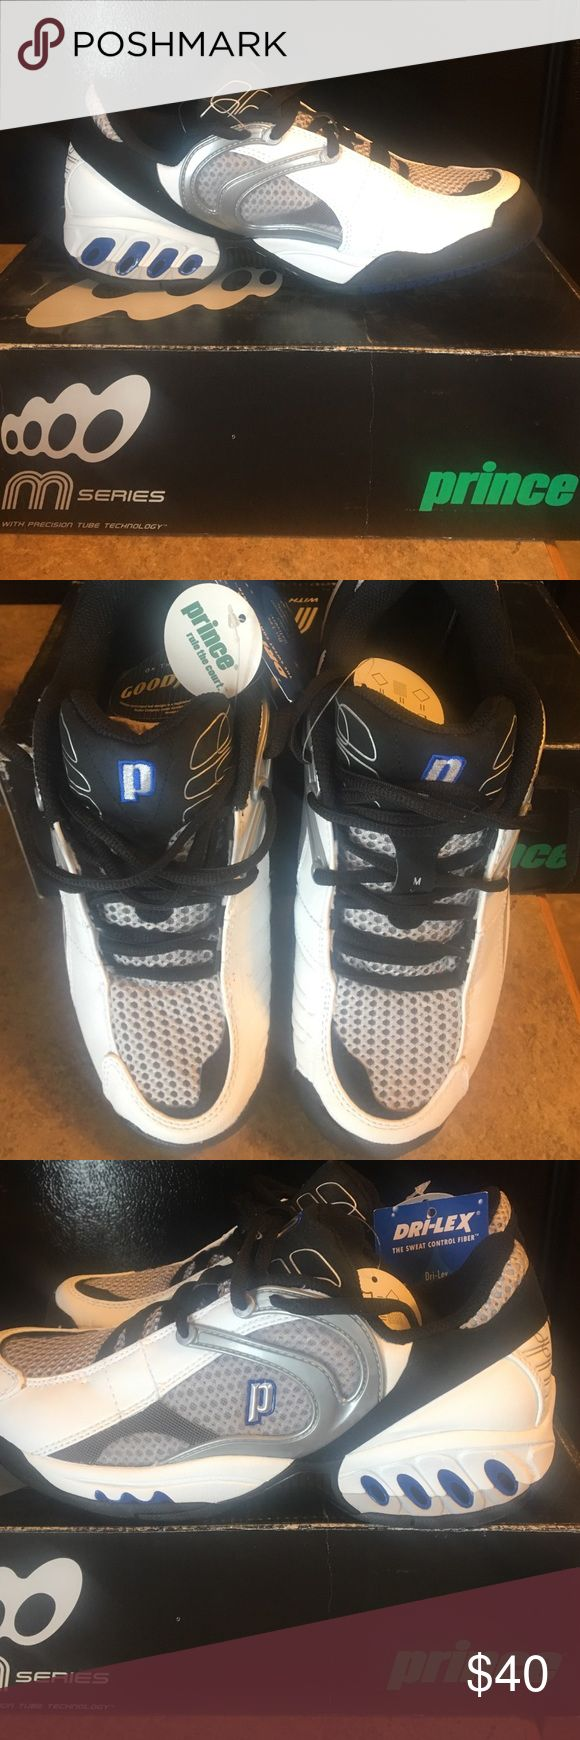 Men's Prince Tennis Shoes 🎾 New with tags! Prince Shoes Athletic Shoes